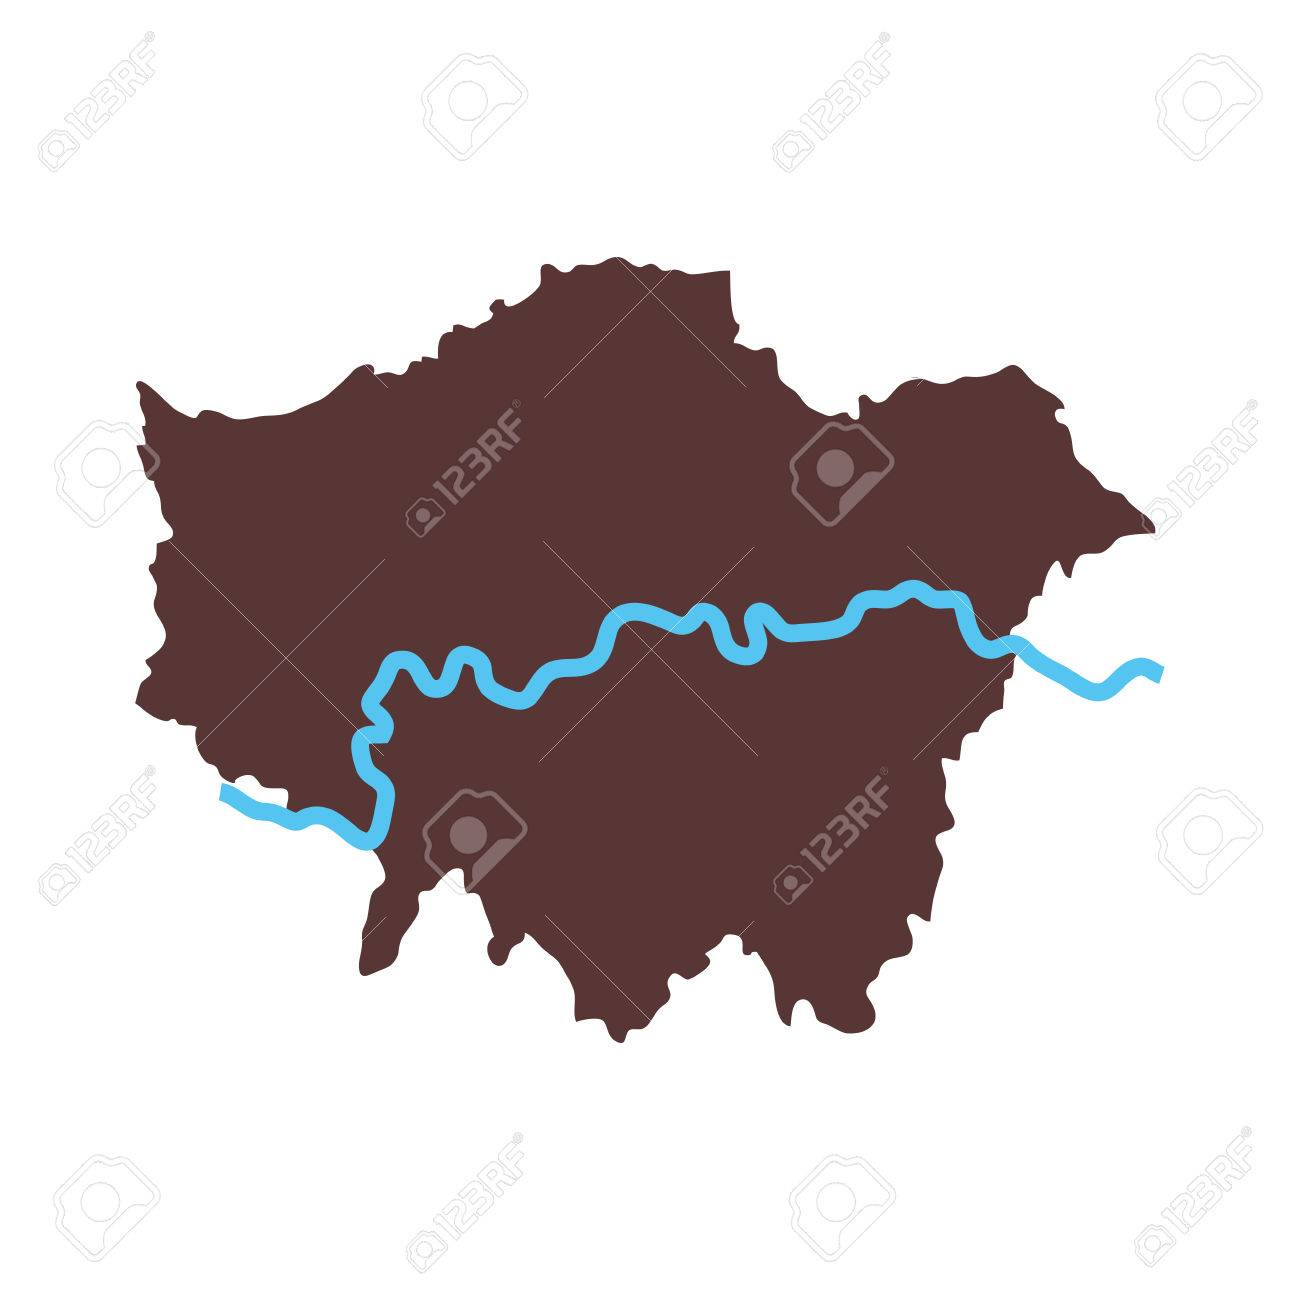 London map city area river united kingdom capital geography vector london map city area river united kingdom capital geography vector graphic isolated stock vector 61148357 gumiabroncs Choice Image